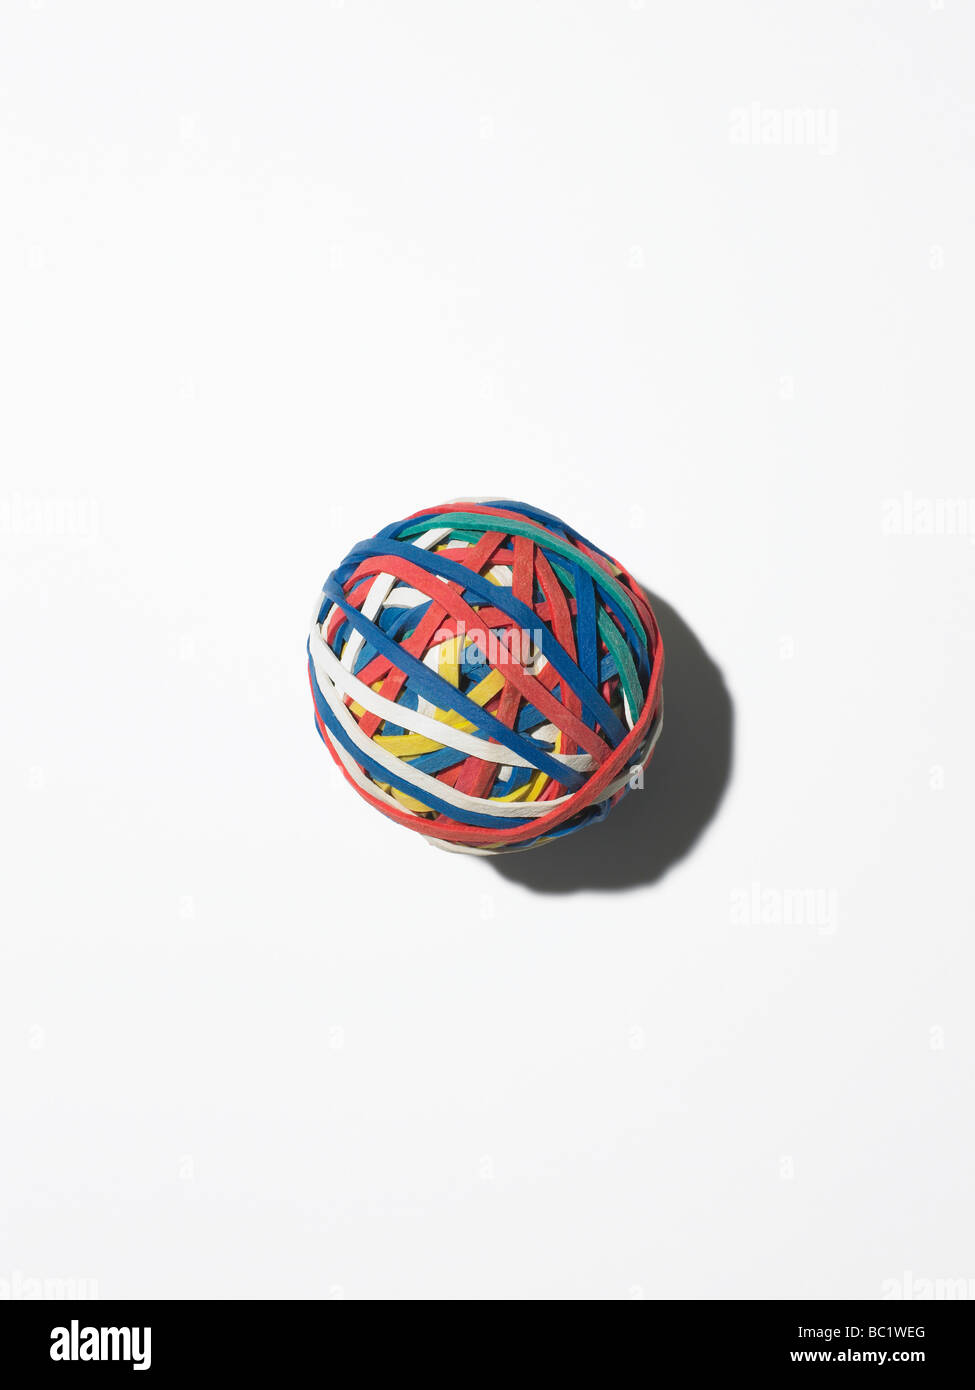 rubber ball band - Stock Image